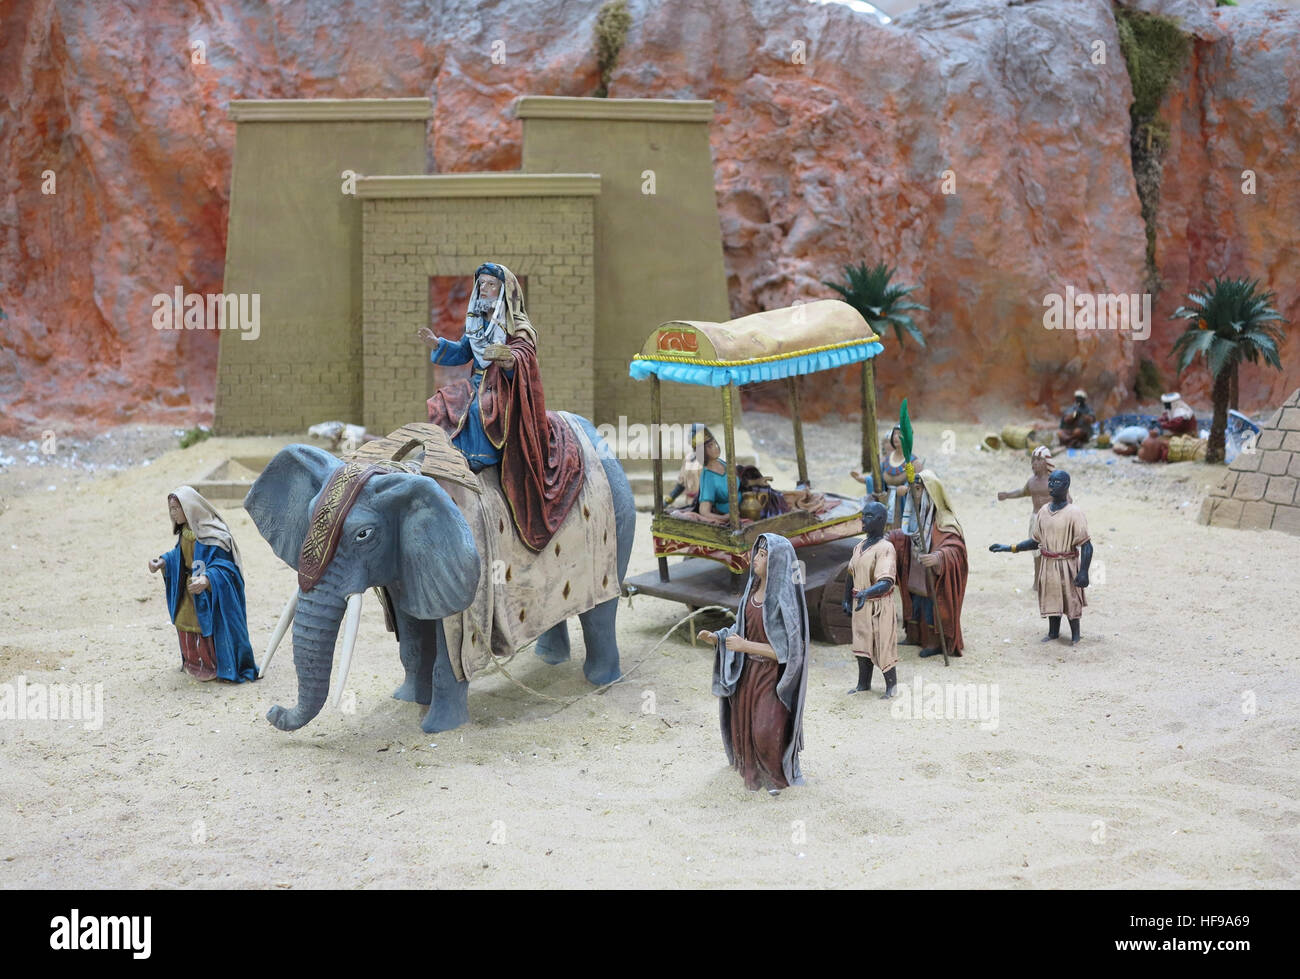 nativity figures stockfotos nativity figures bilder alamy. Black Bedroom Furniture Sets. Home Design Ideas